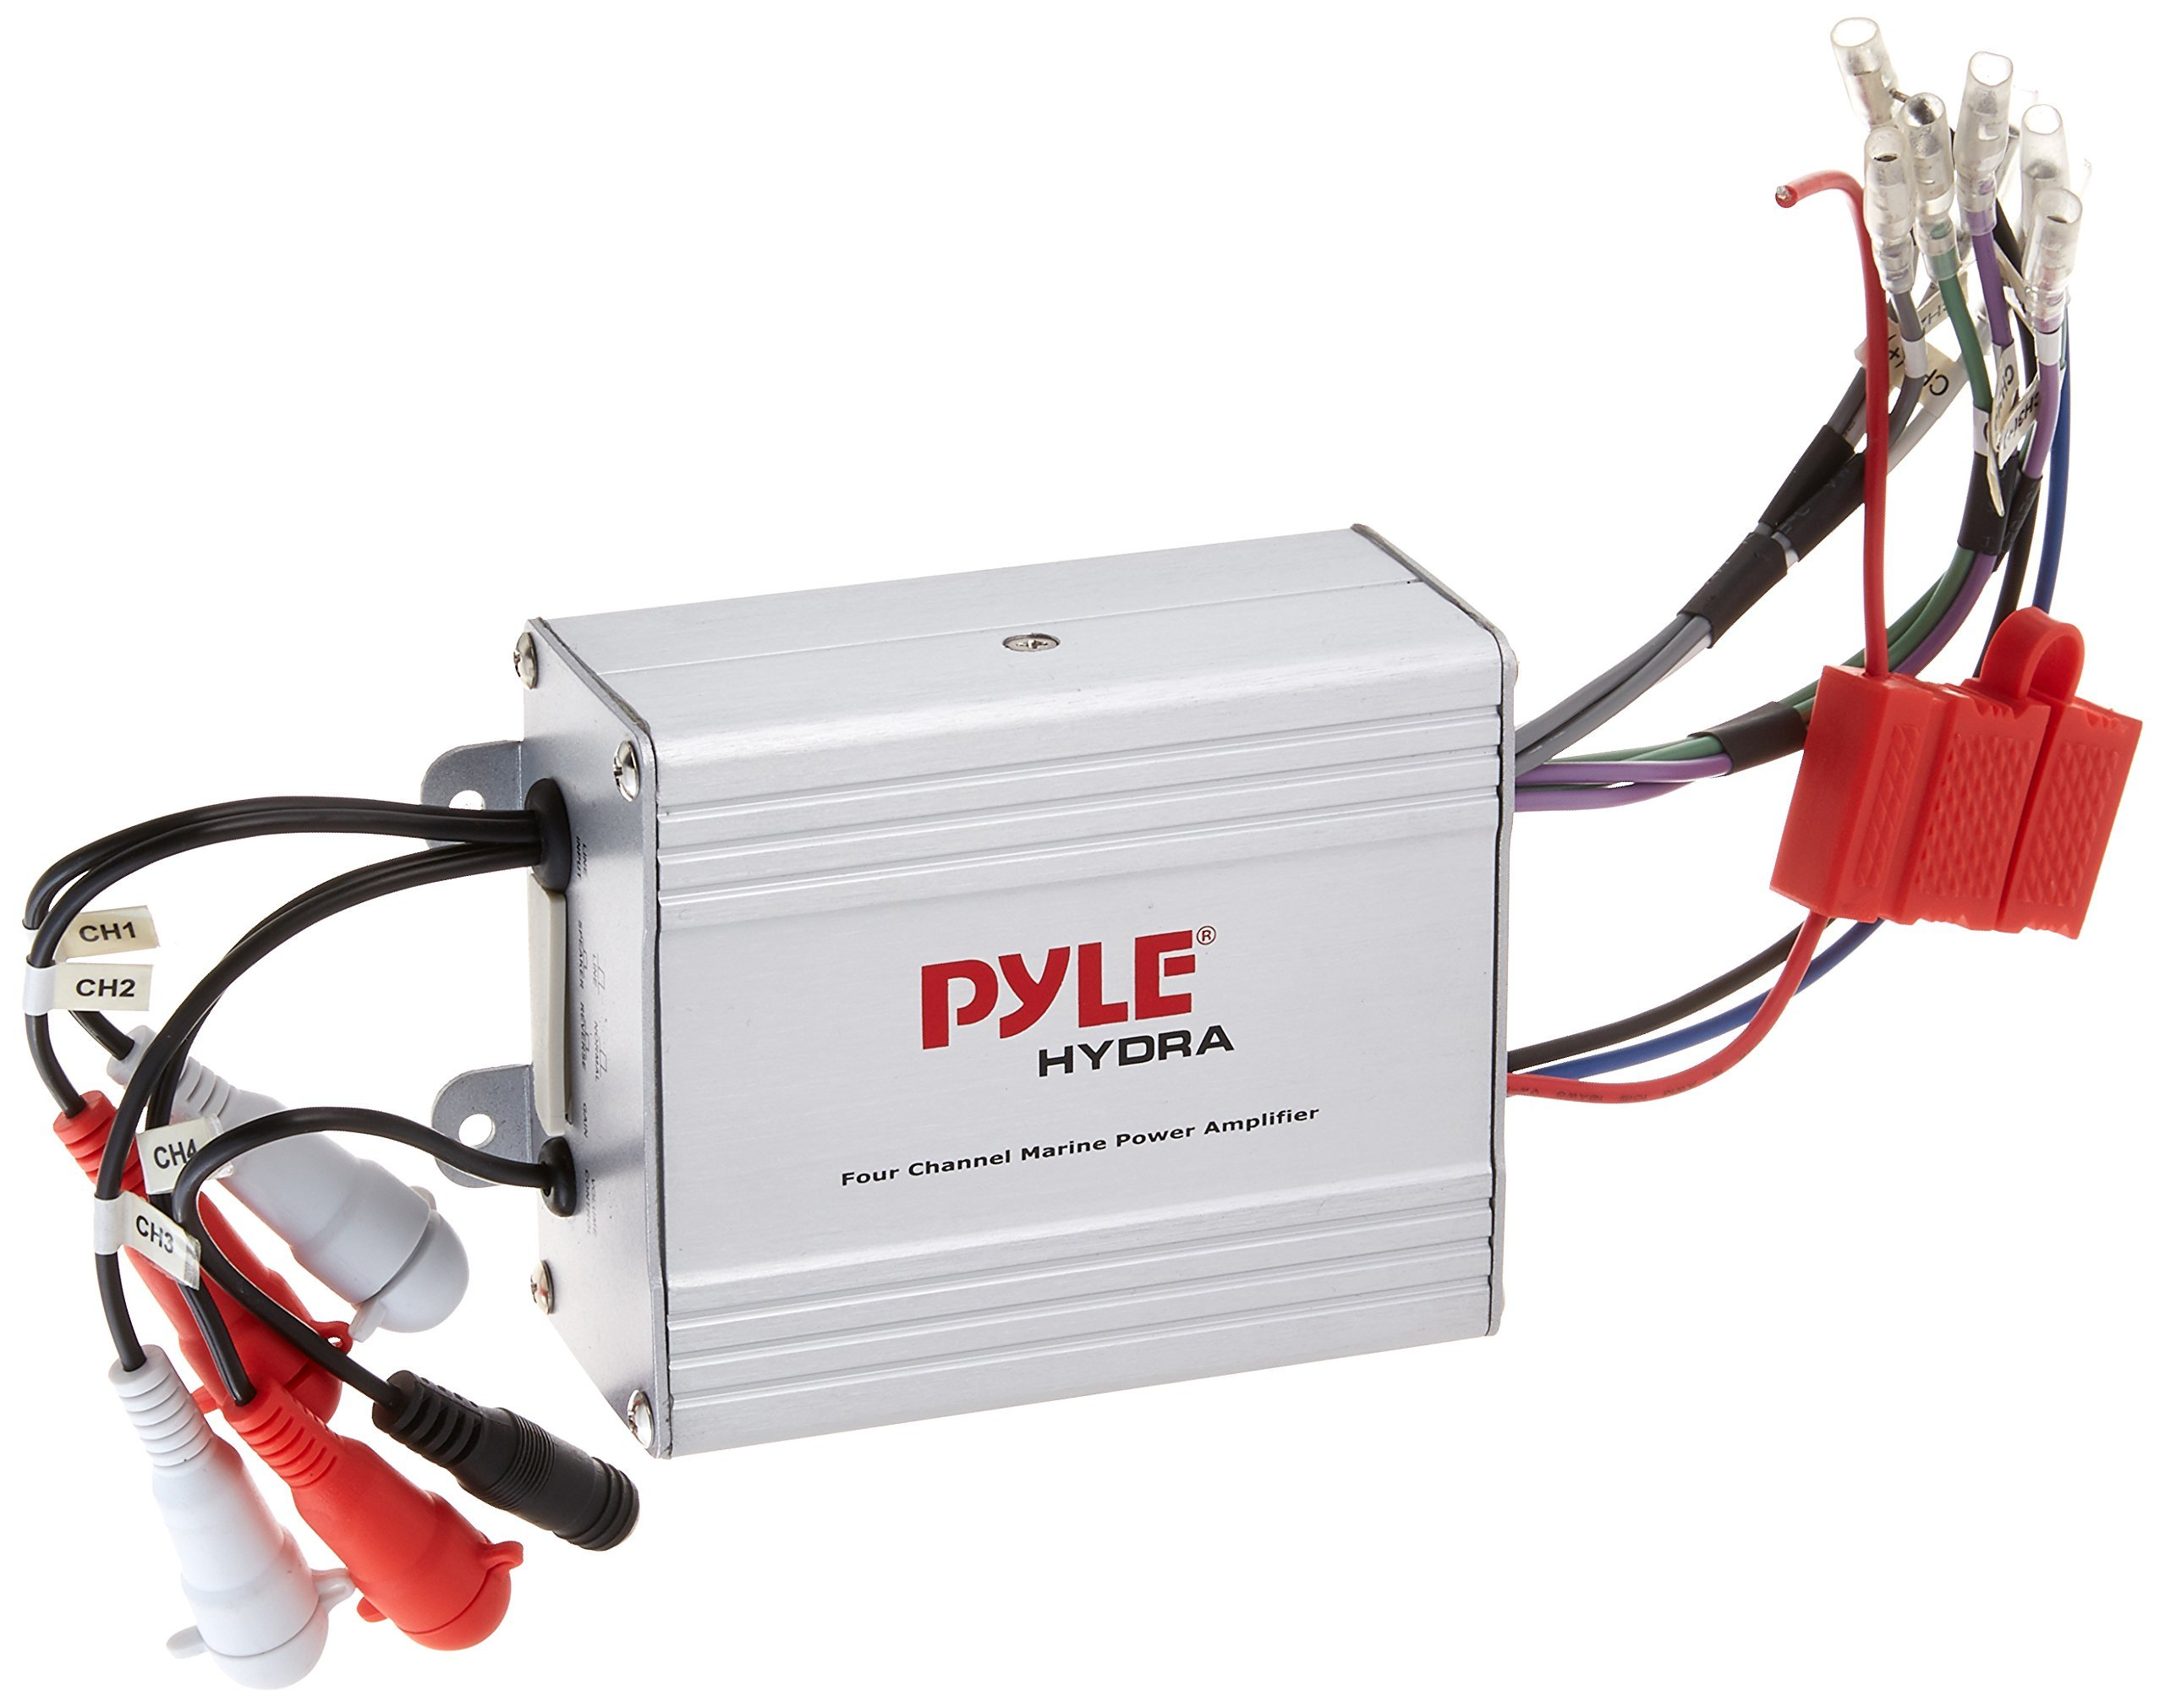 Marine Audio Wiring Library Electrical Get Quotations Pyle Compact Amplifier Kit Waterproof Rated 4 Channel Amp